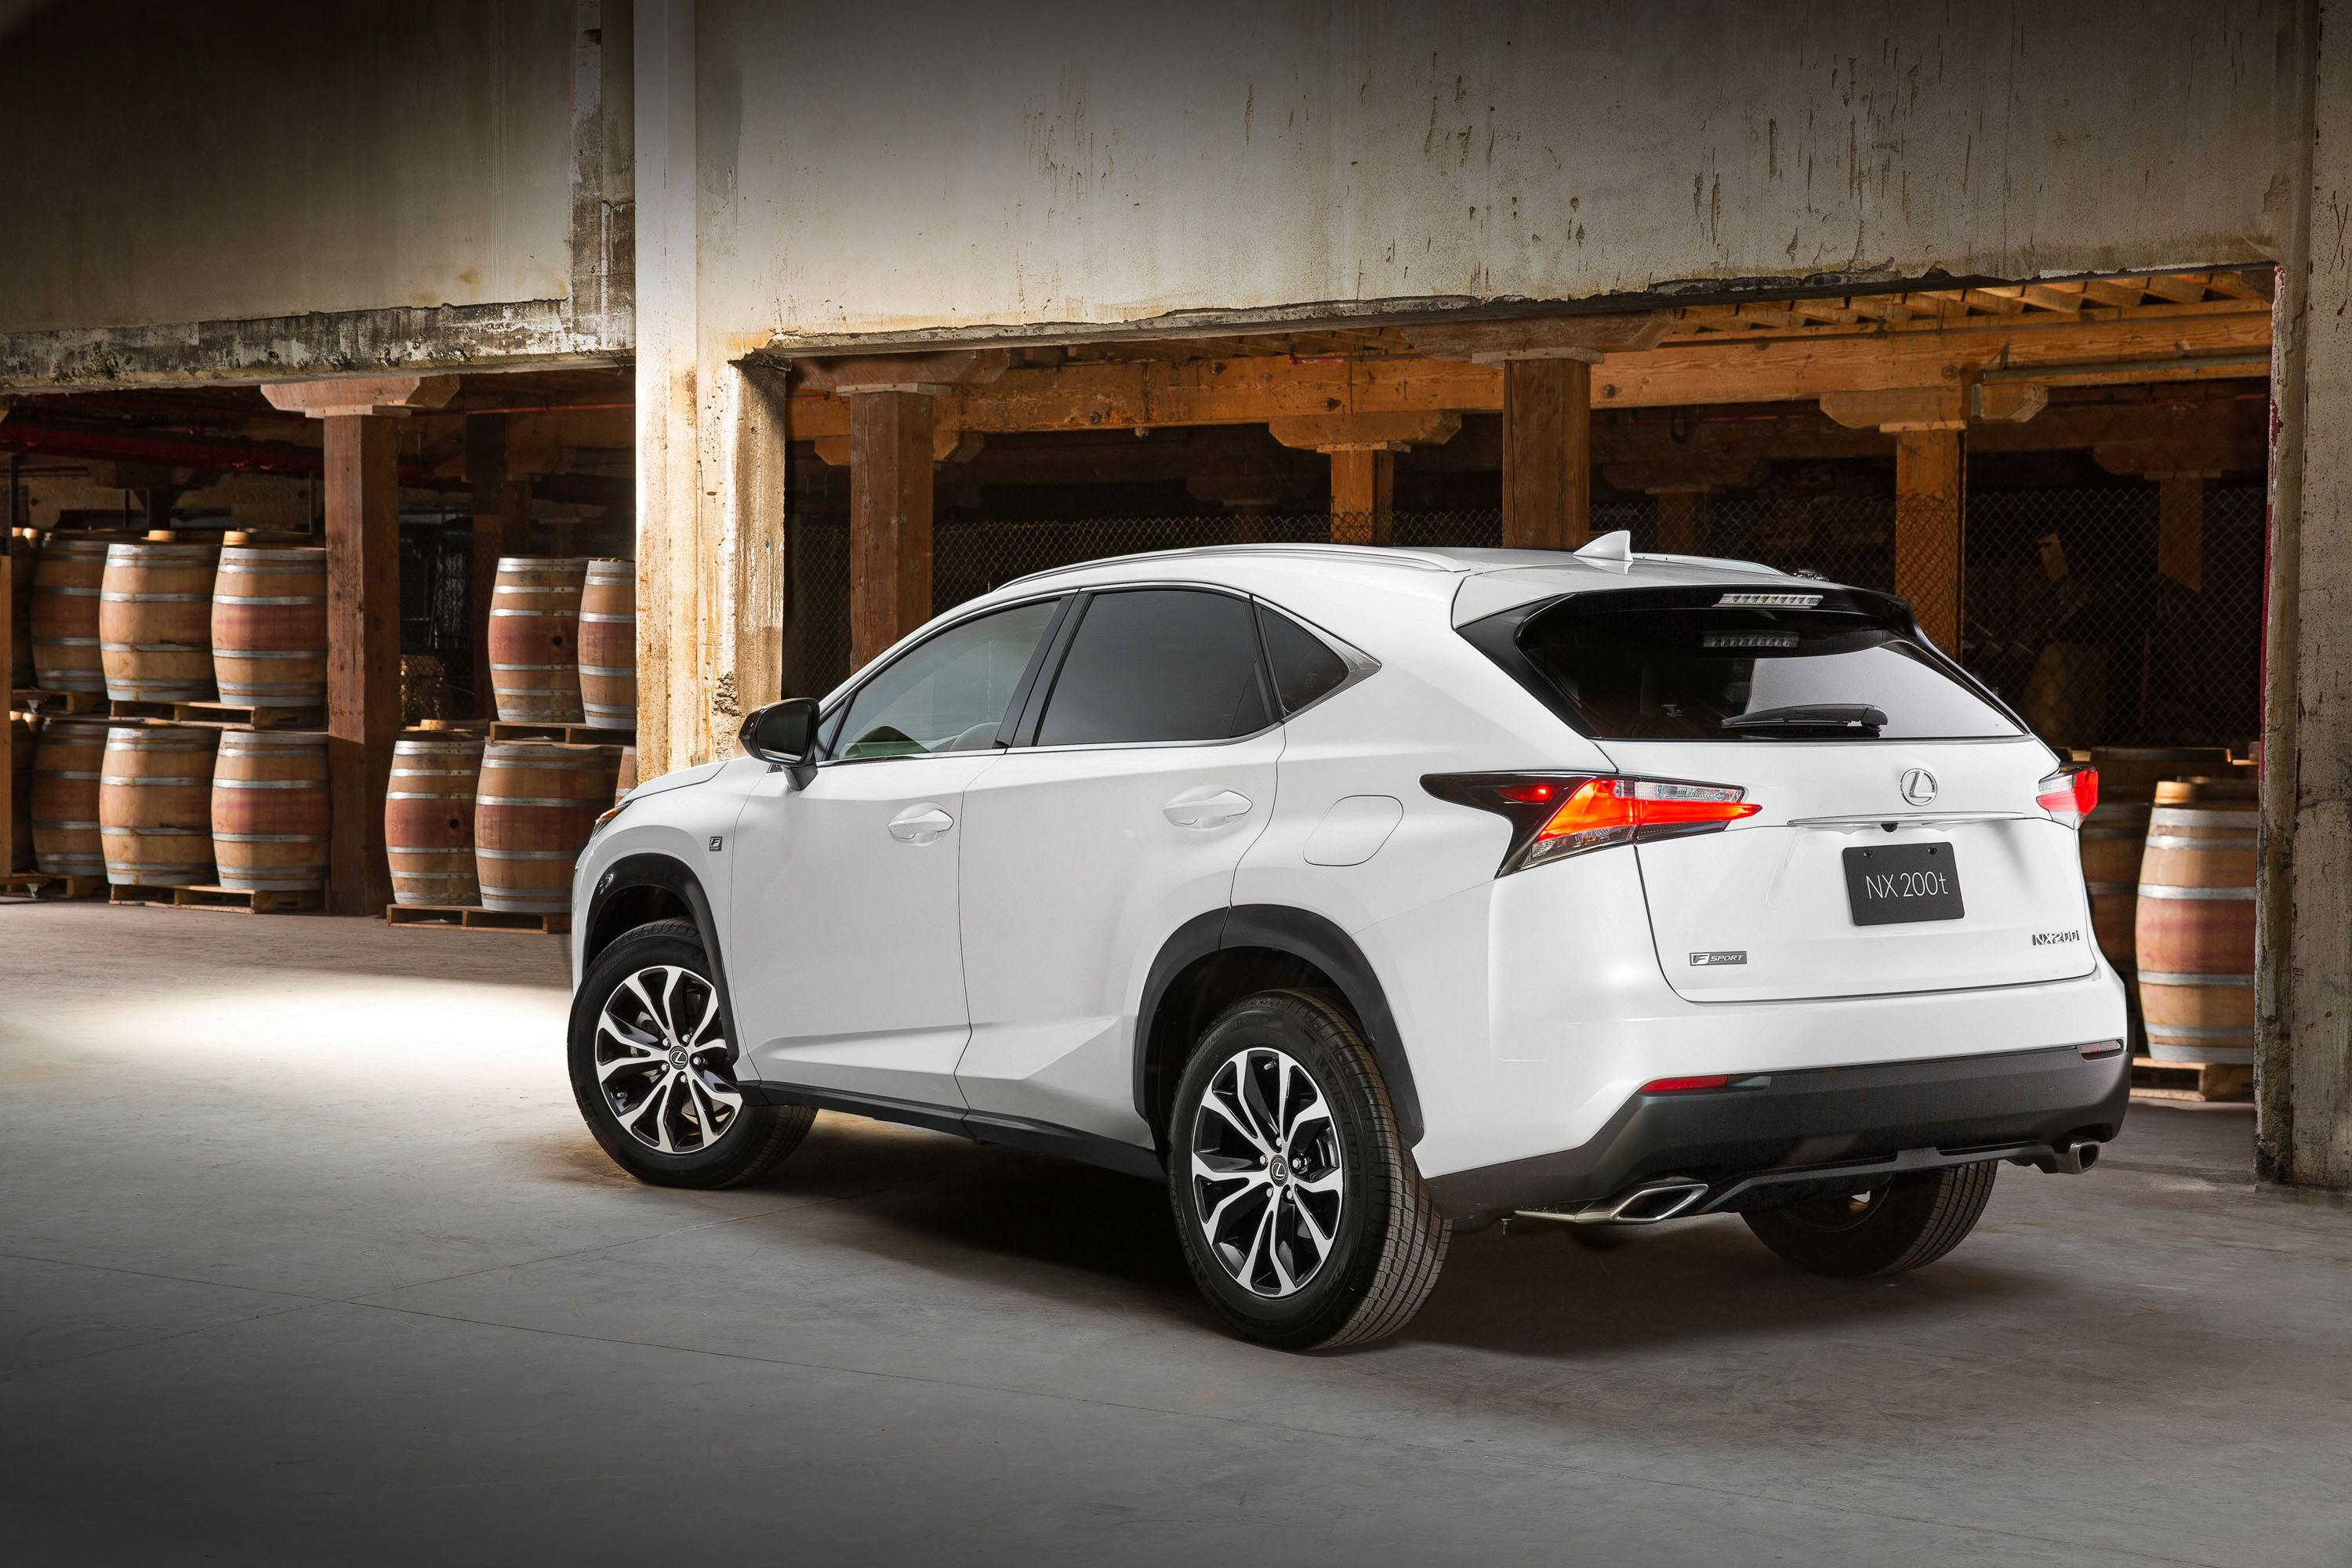 on online lot white left copart carfinder cert of city nx en oklahoma in ok sale lexus title view auctions salvage auto